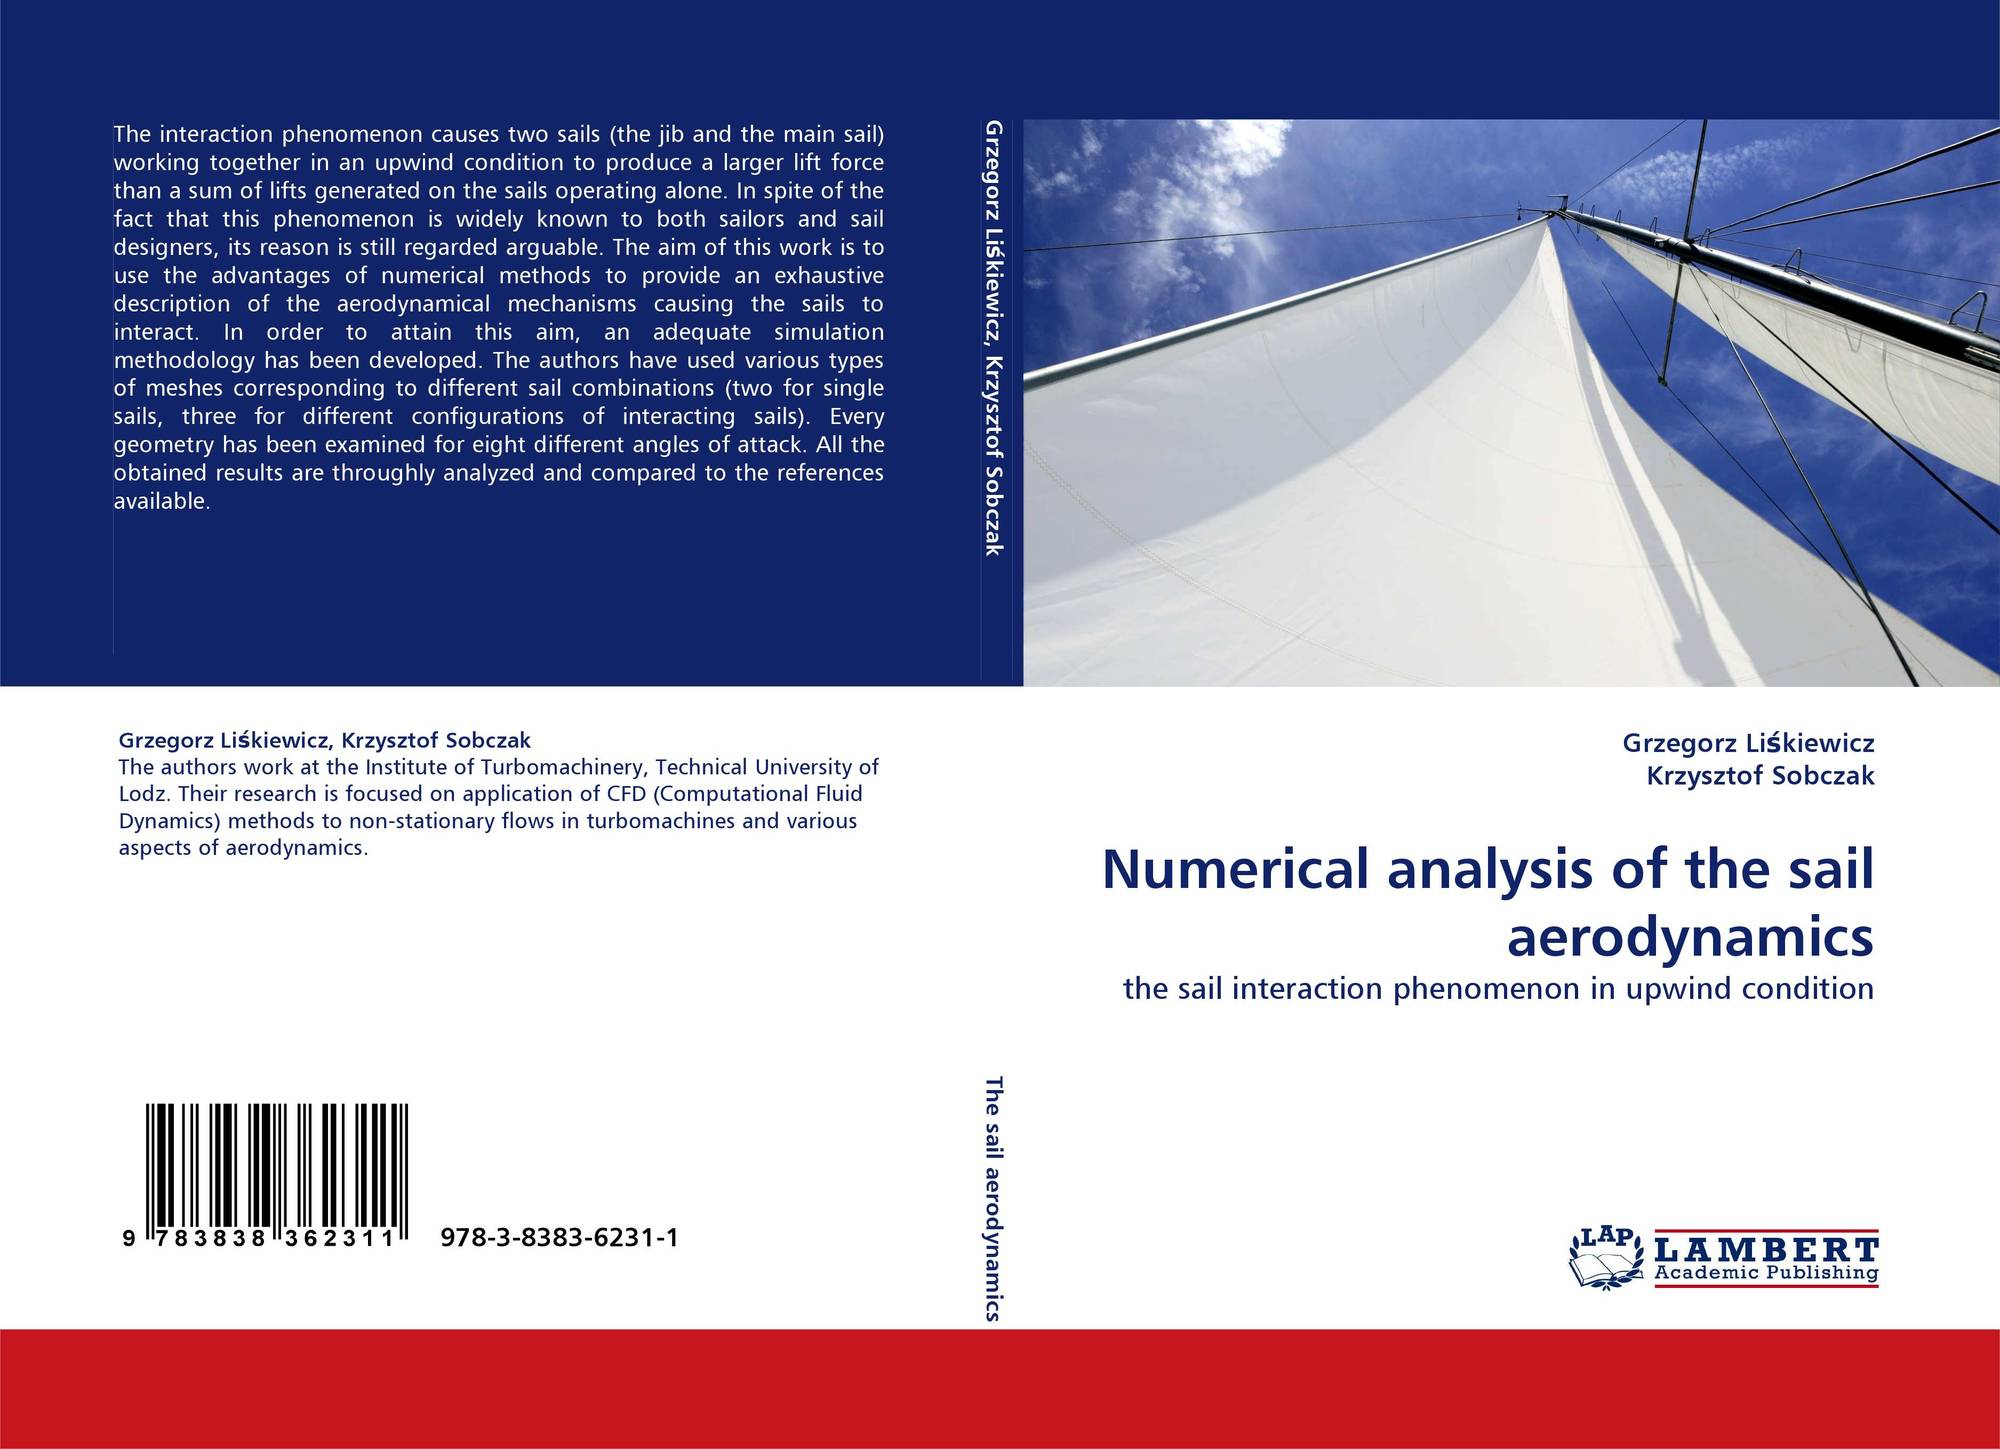 an introduction to the analysis of aerodynamics Problems involved in the solution of fundamental equations in aerodynamics, which are an accurate description of the laws of motion of a gas-like medium and its interaction forces with solids moving in this medium turbulence, for which no satisfactory mathematical model has yet been established .